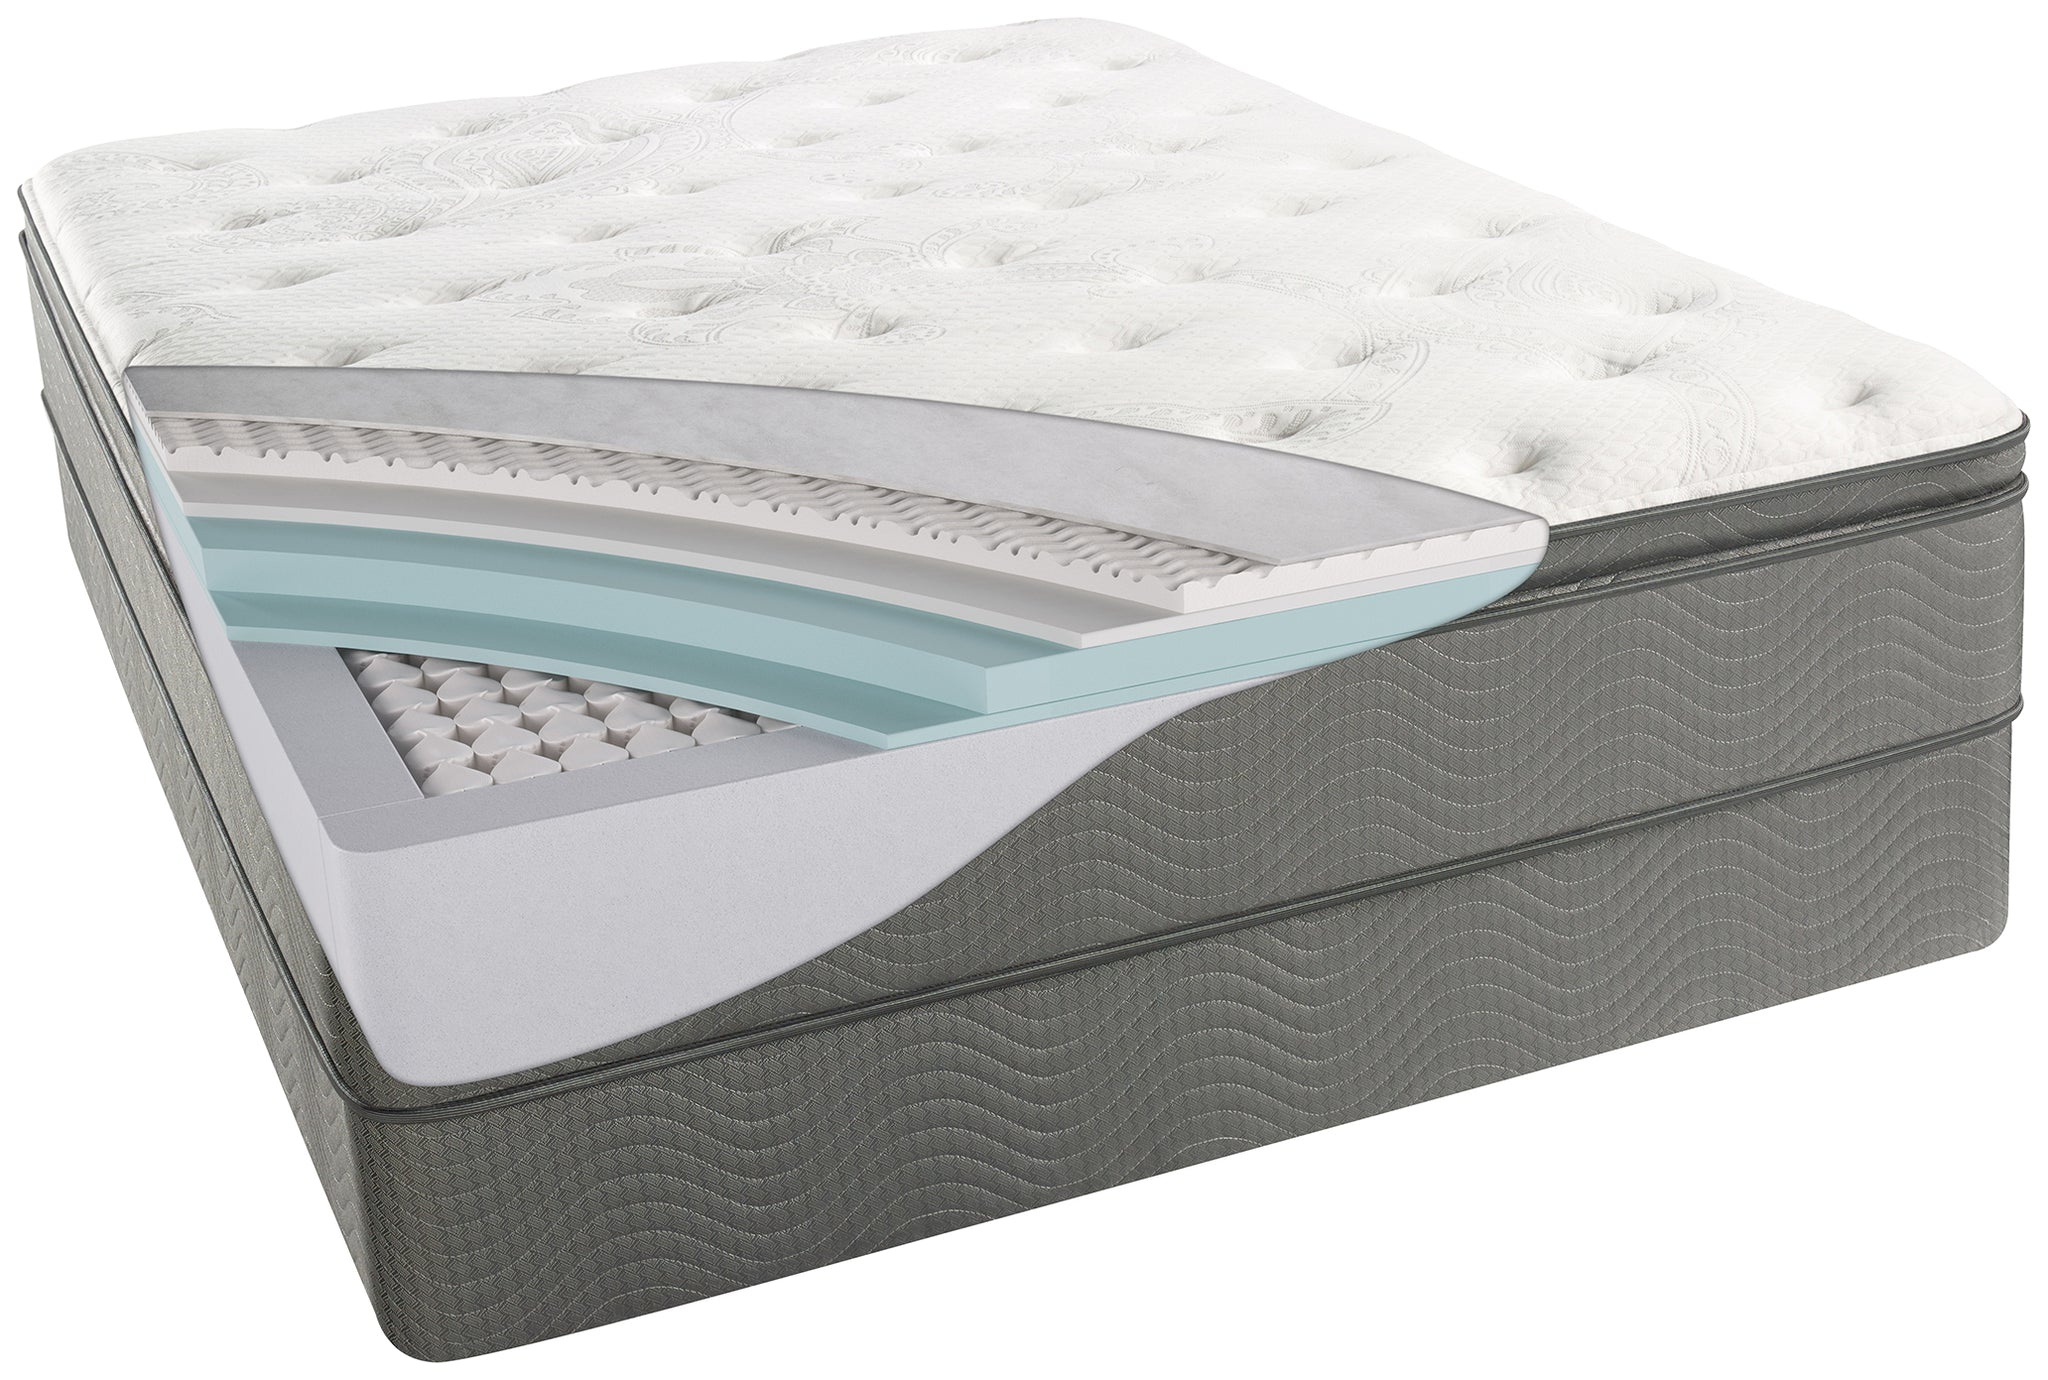 topper pillow spring mattress bonnel top extra